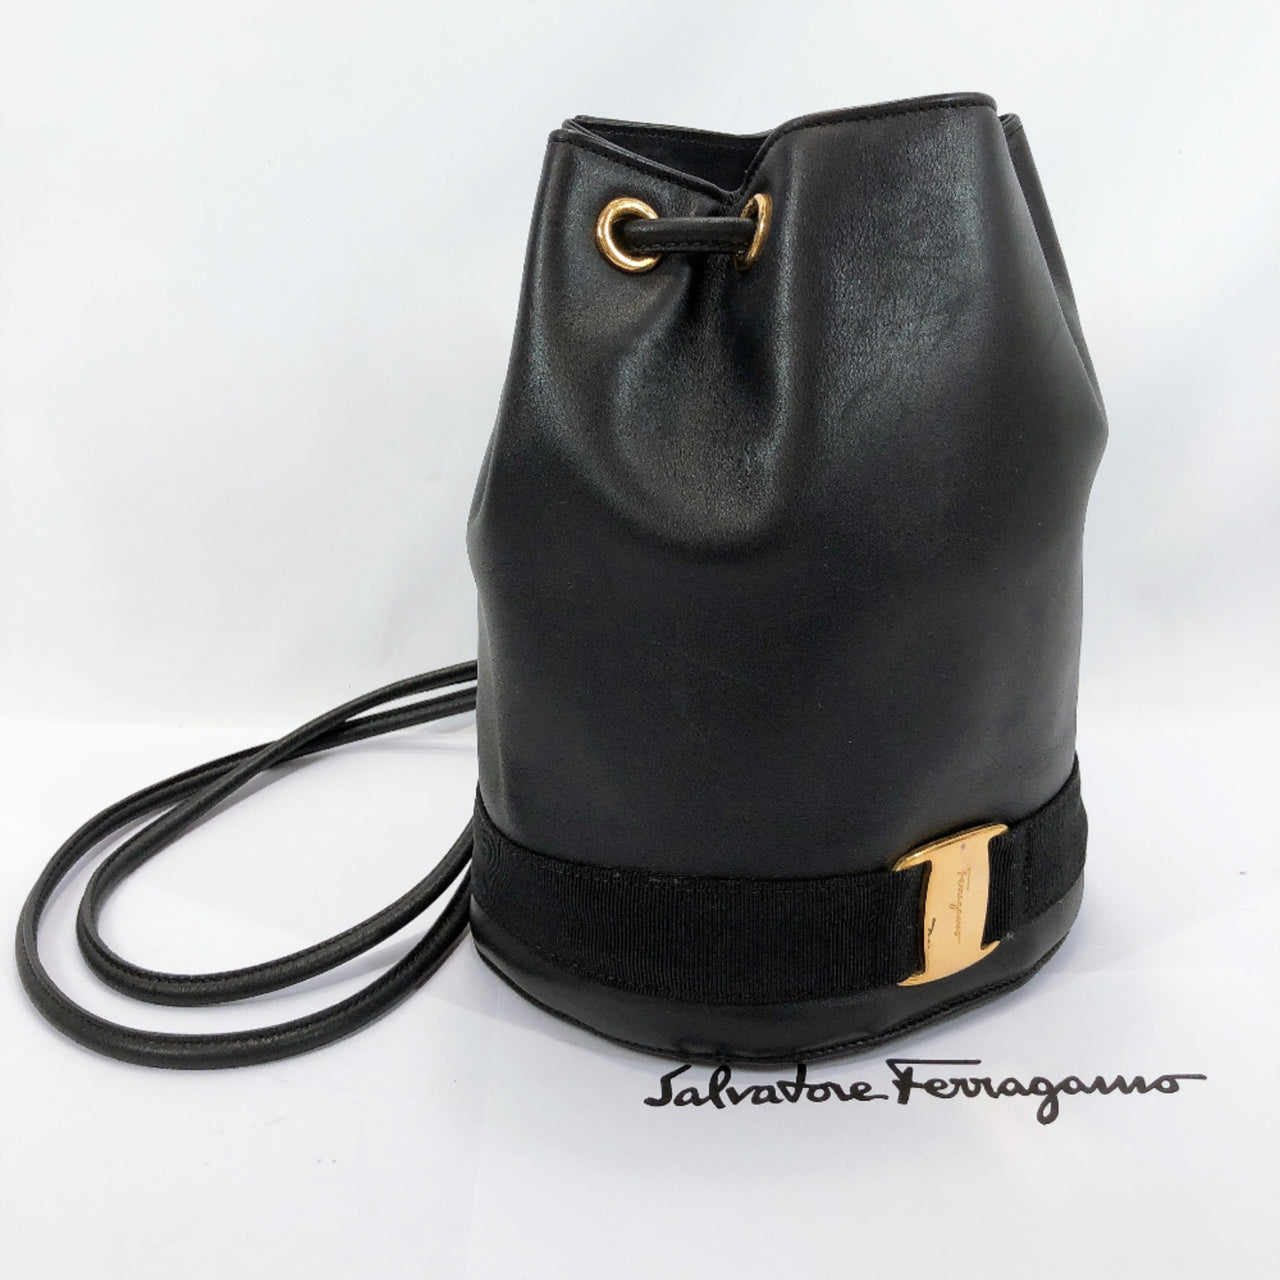 Salvatore Ferragamo Backpack Daypack Vala leather black Women Used